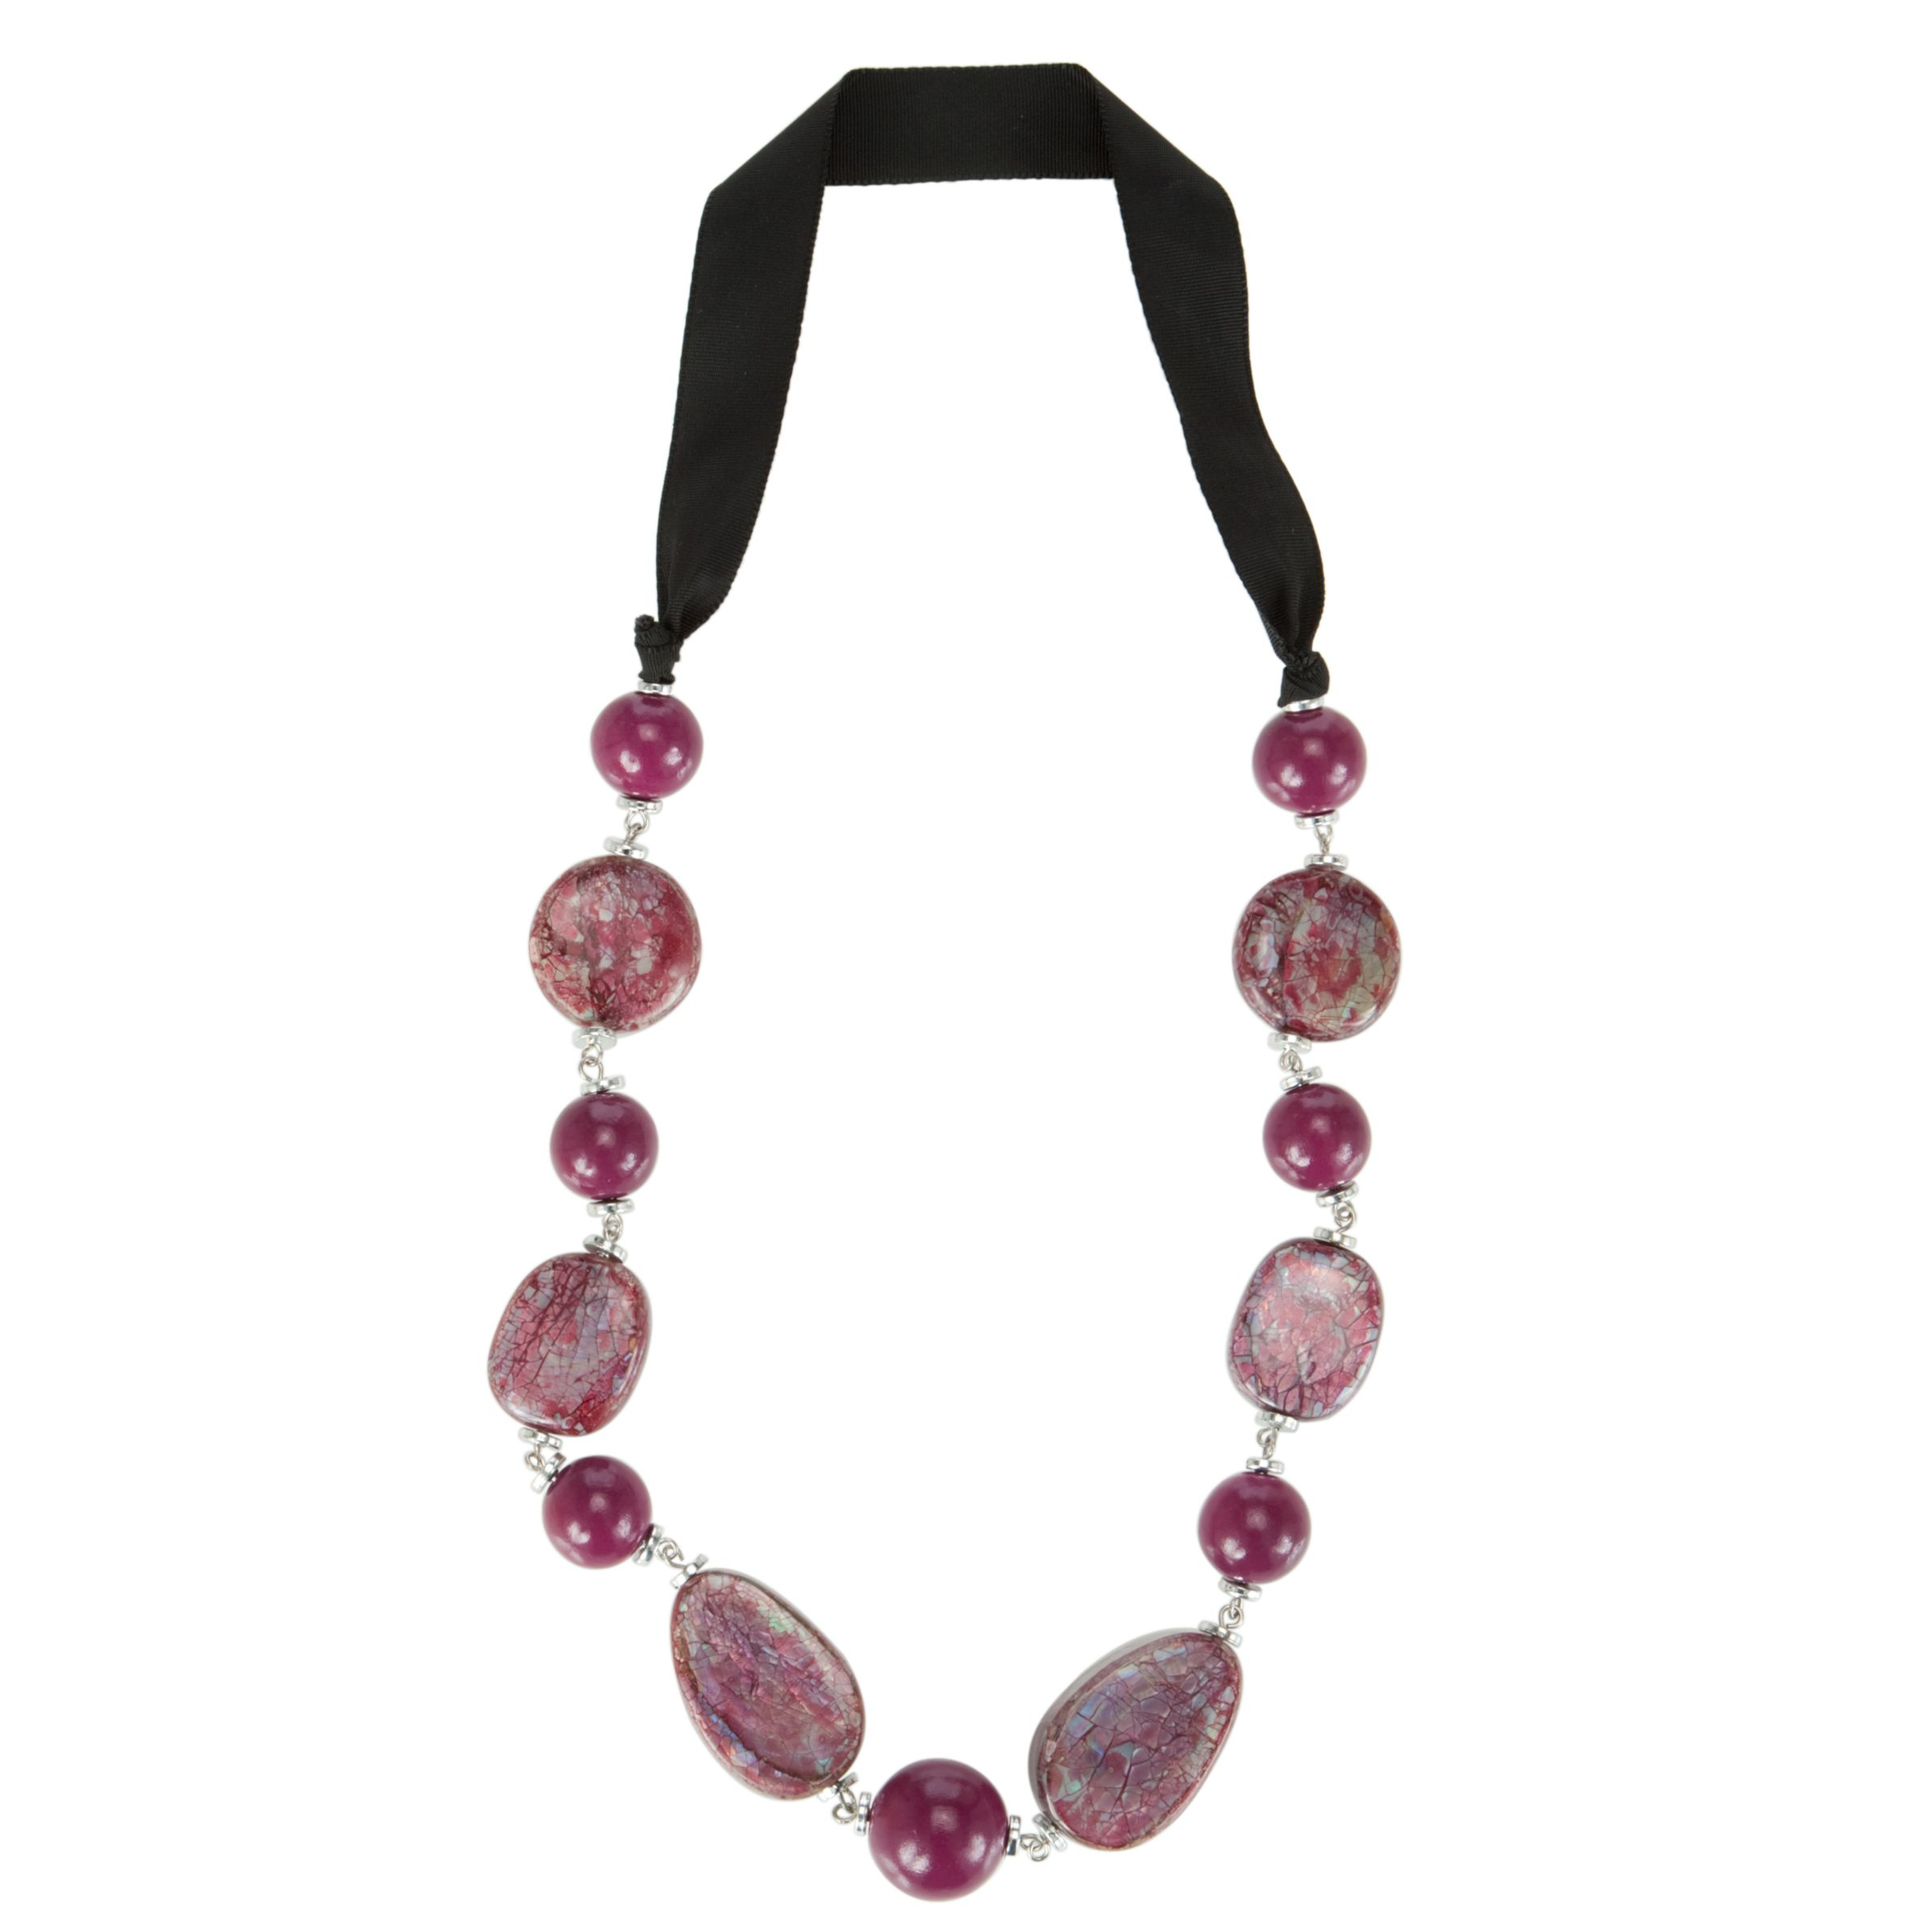 One Button Mop Beaded Necklace, Fuchshia/Damson